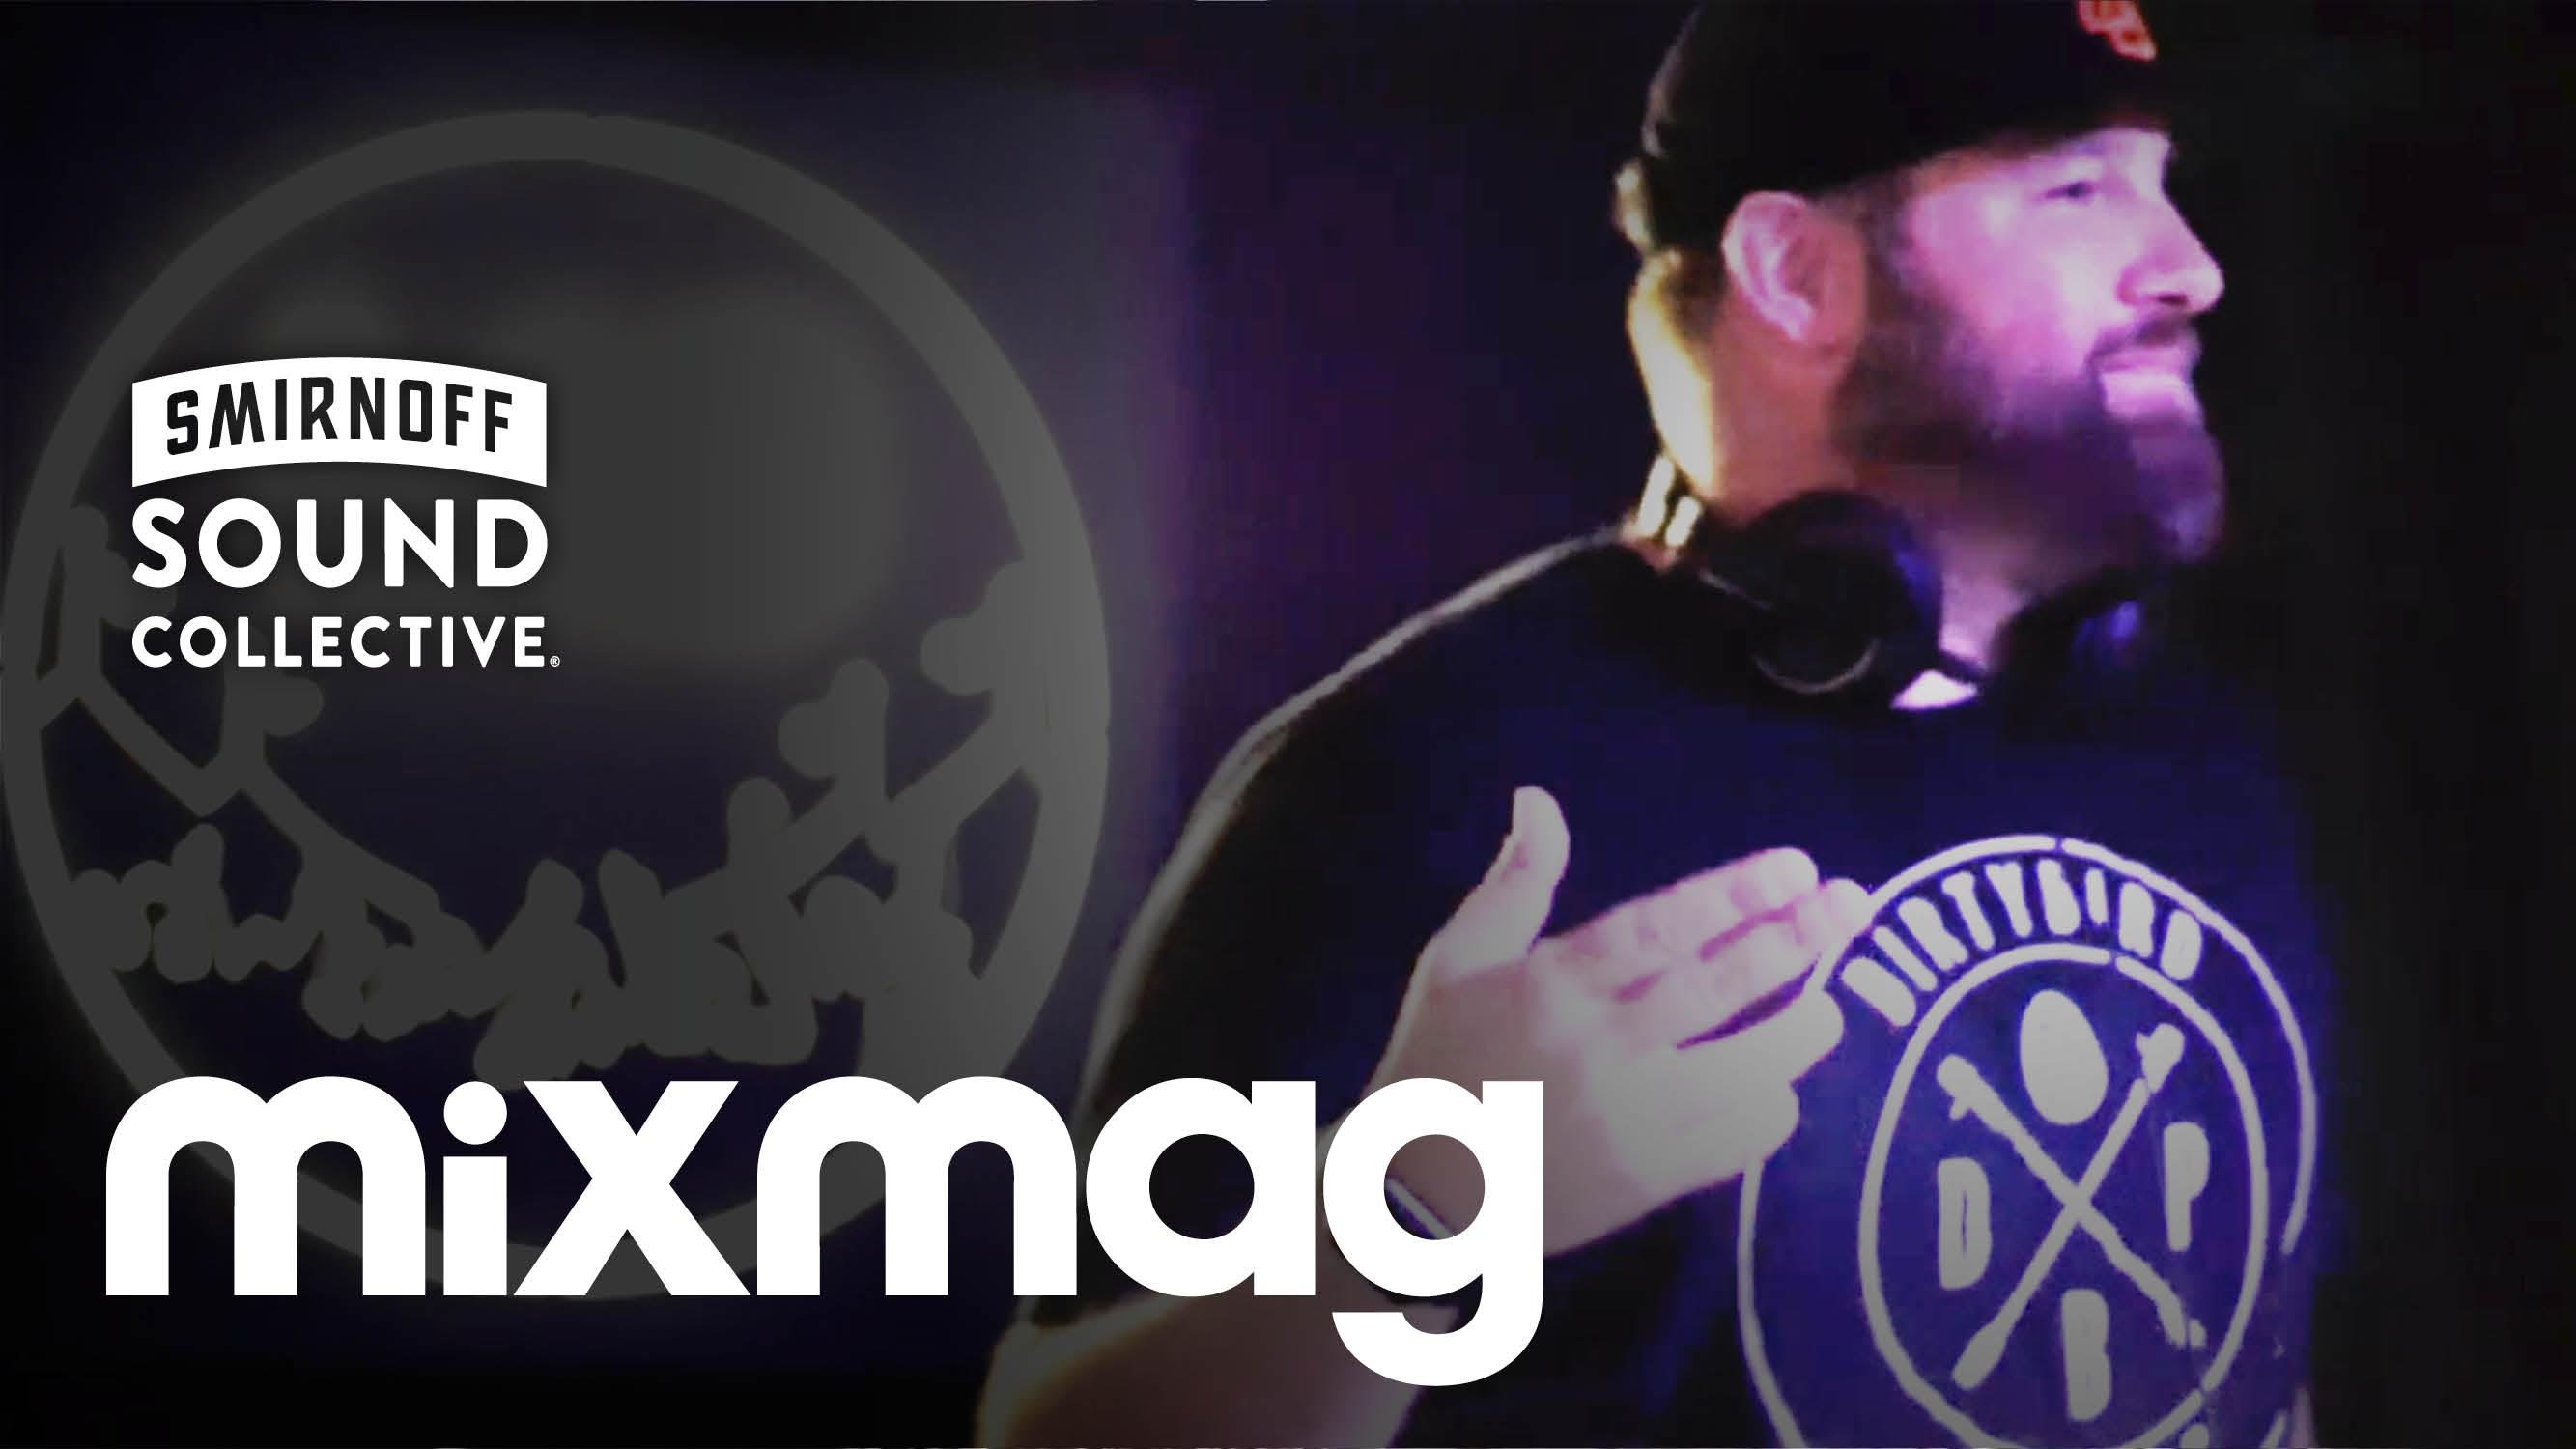 download → Claude Vonstroke - live at Mixmag DJ Lab (Smirnoffhouse) - September 2015